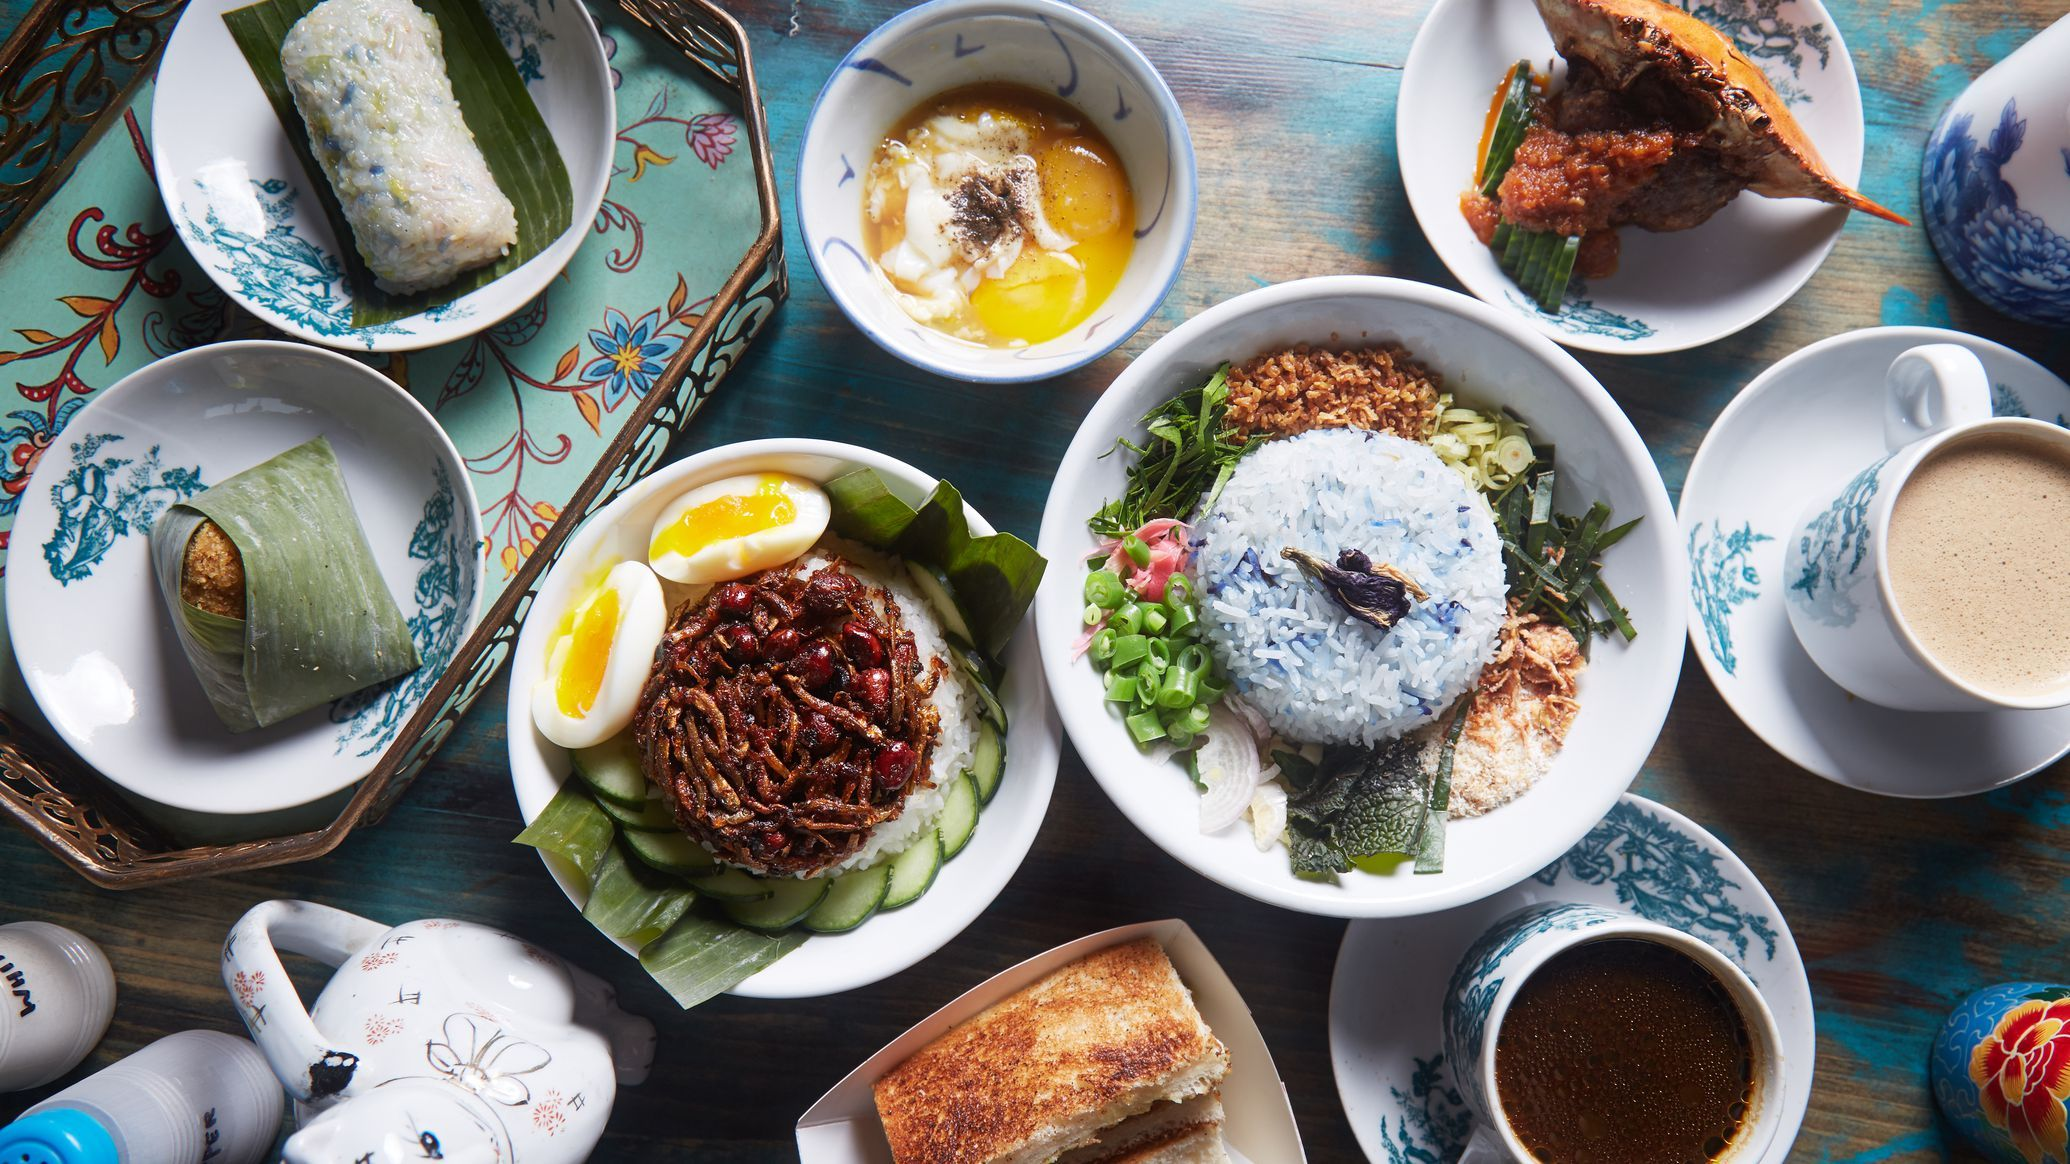 Malaysian Hit Kopitiam Returns To Nyc As A Colorful All Day Restaurant Nyc Food Nyc Restaurants Food